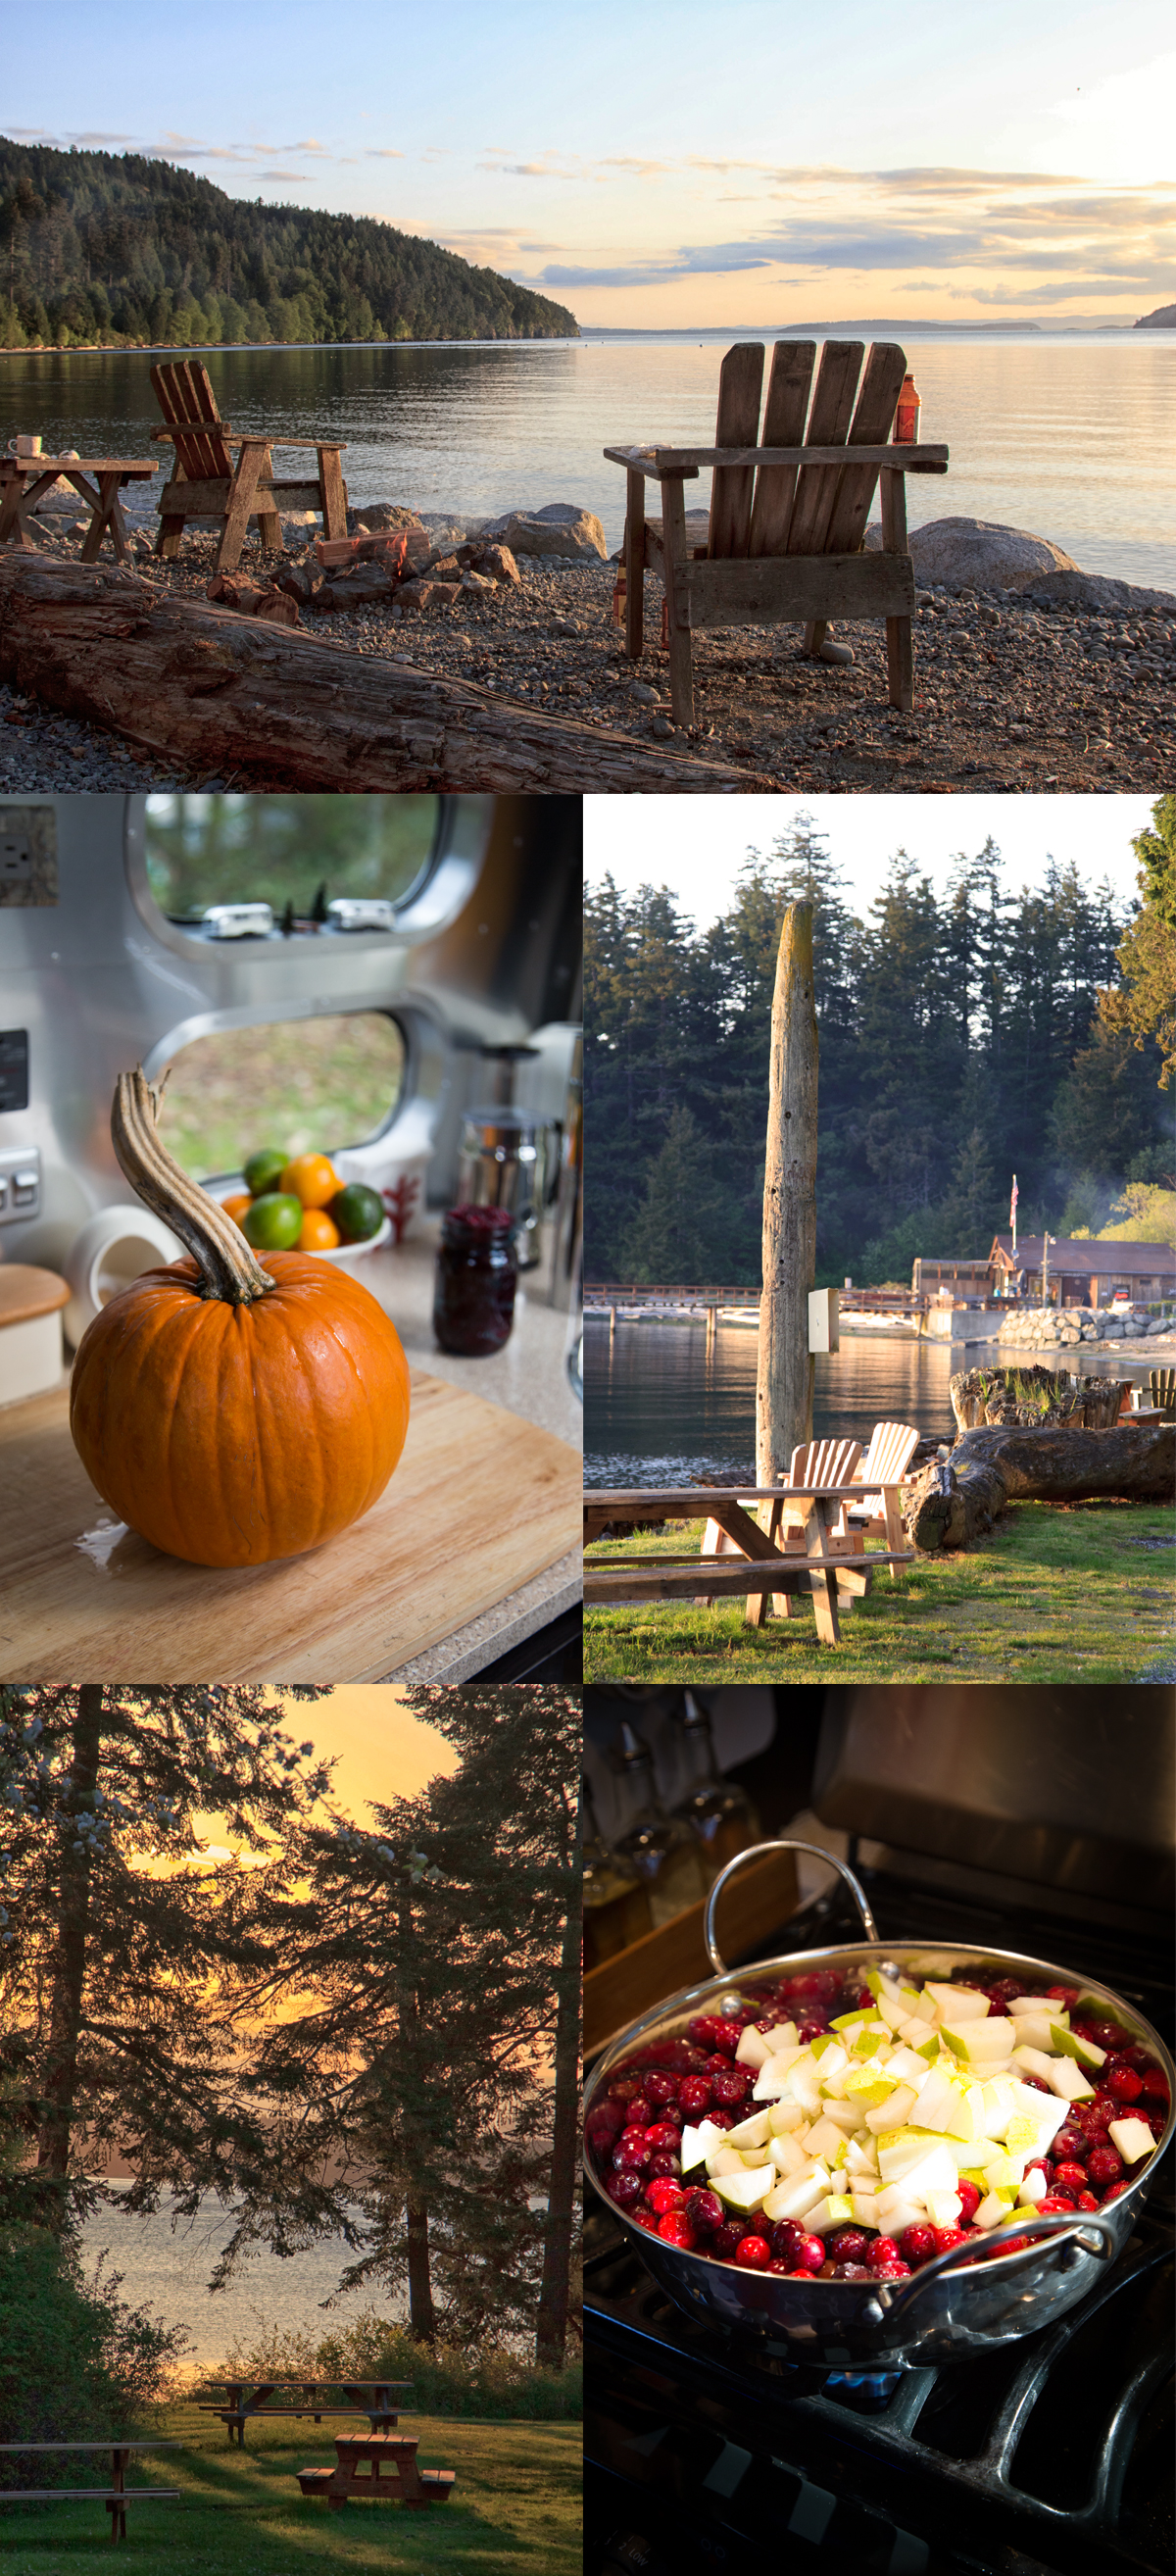 Thanksgiving at West Beach Resort on Orcas Island with our Airstream